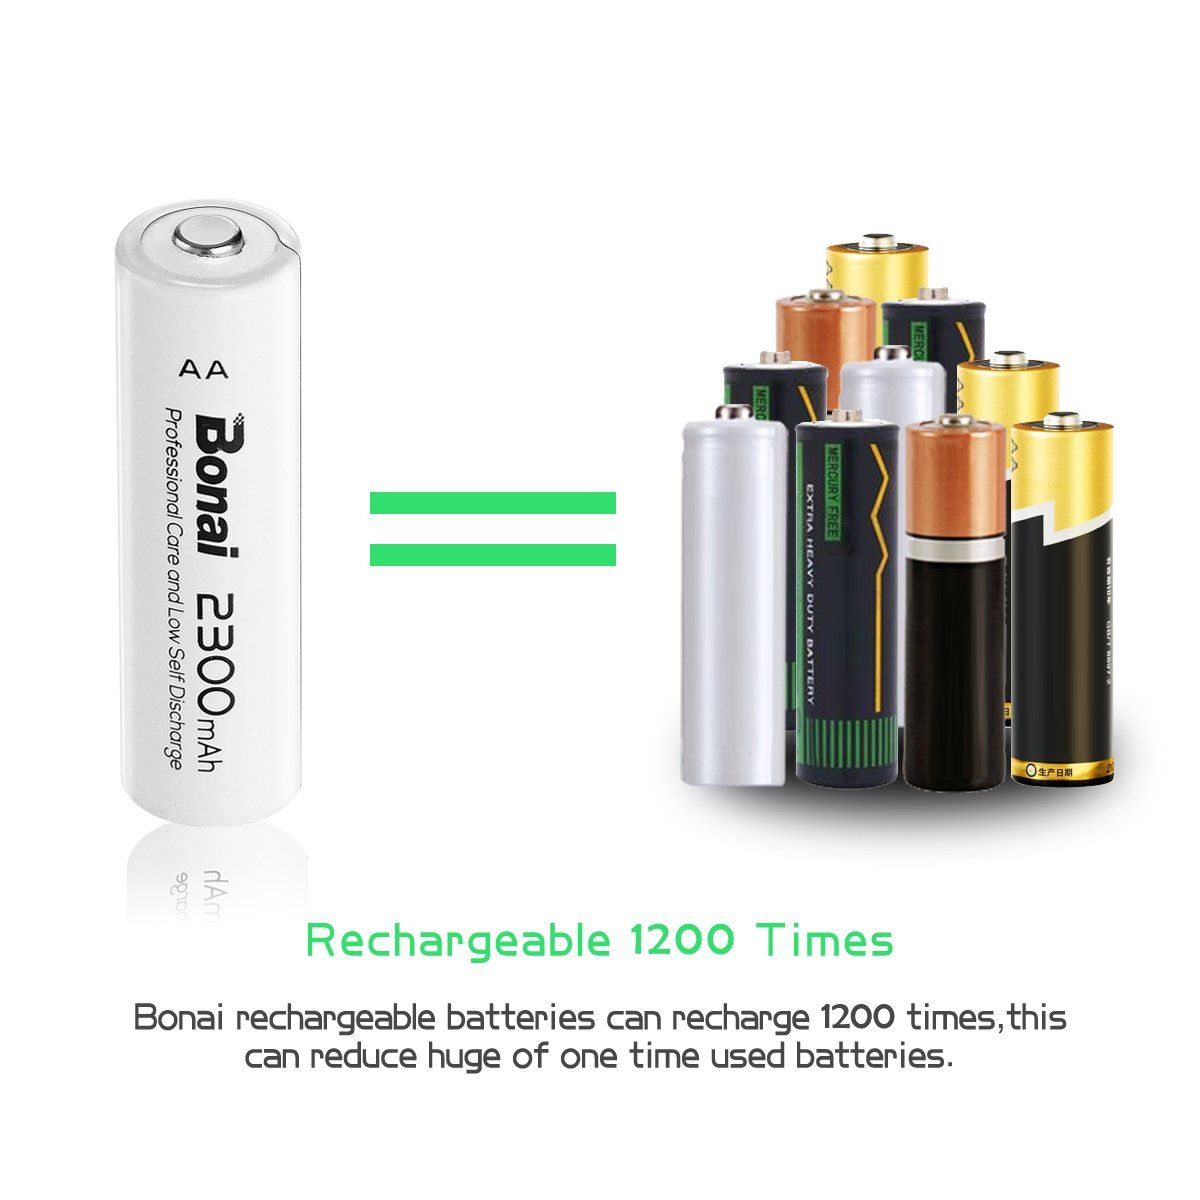 Bonai 8 Pack 2300mah 1 2v Aa Nimh High Capacity Rechargeable Batteries Ul Certificate Details Can Rechargeable Batteries Cameras And Accessories Recharge